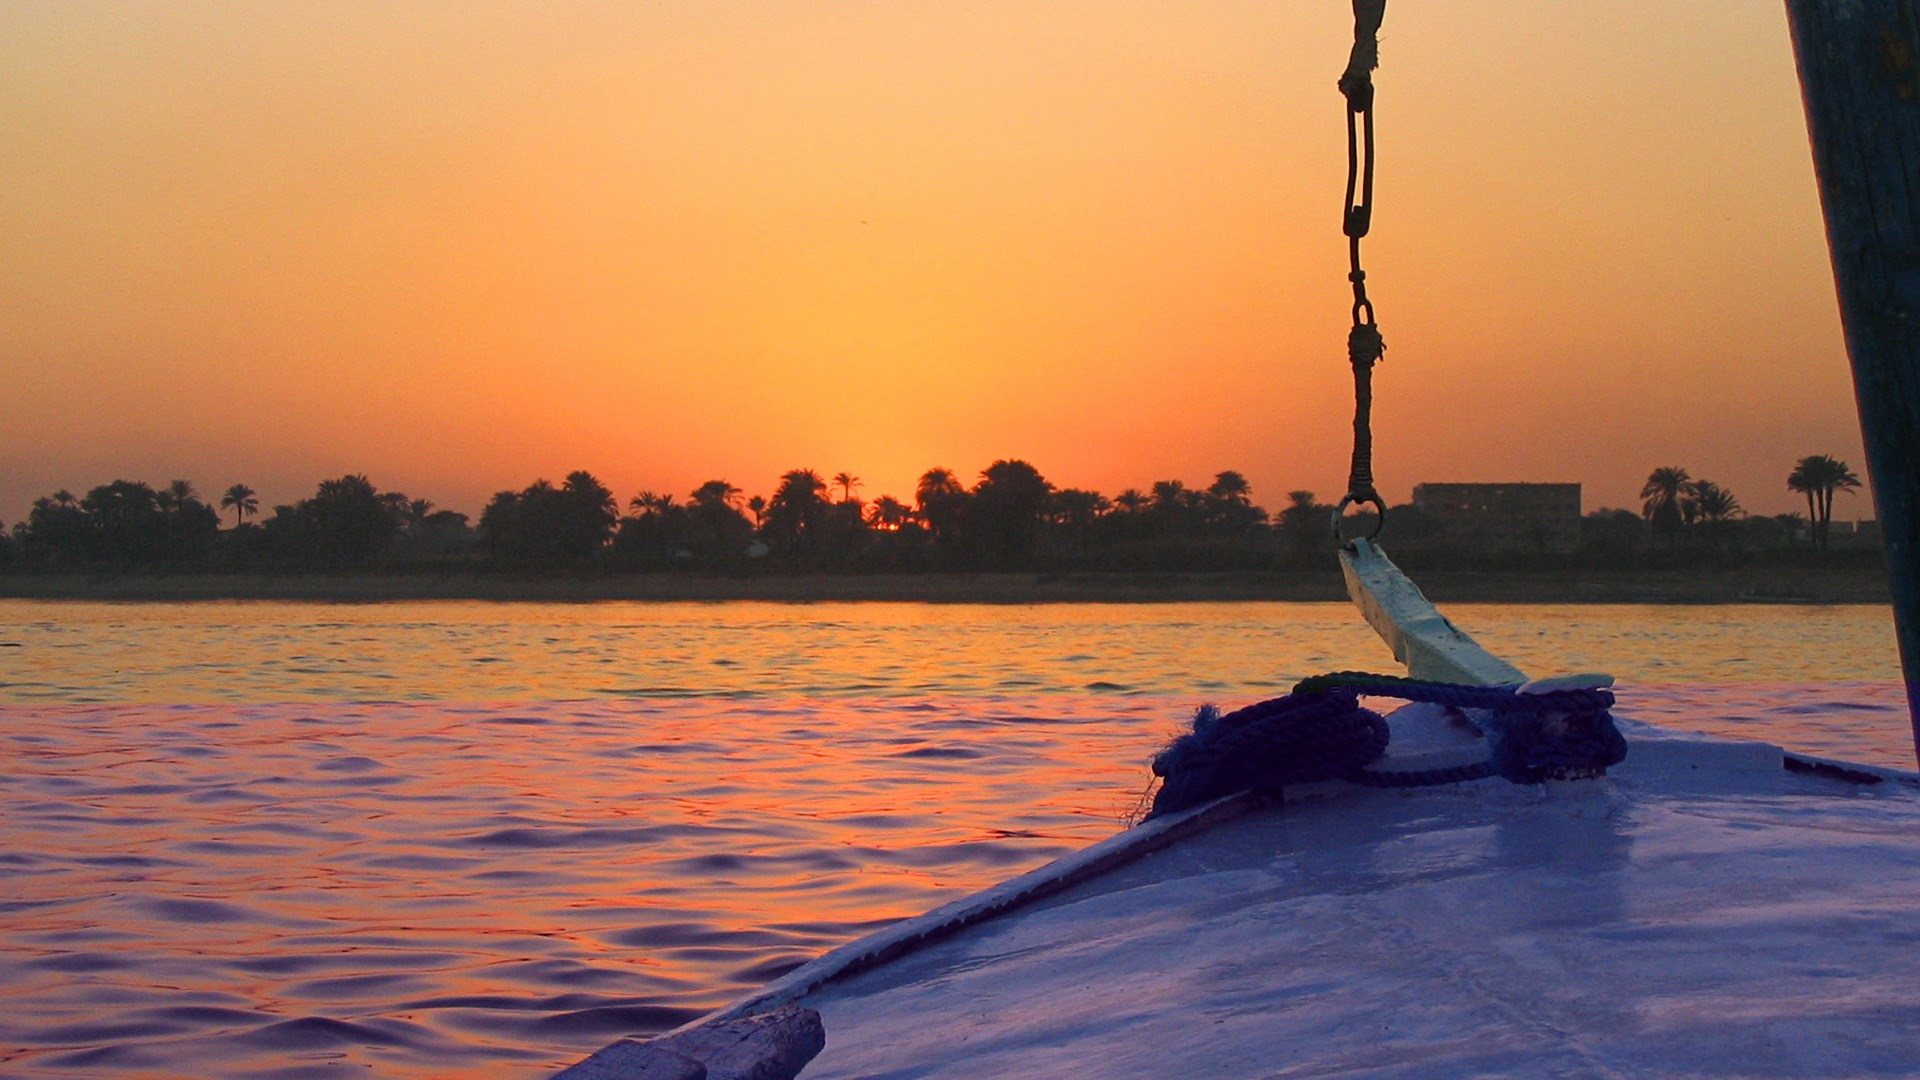 Iphone X Official Wallpaper Hd Egypt Nile Sunset Windows Hd Wallpaper Preview